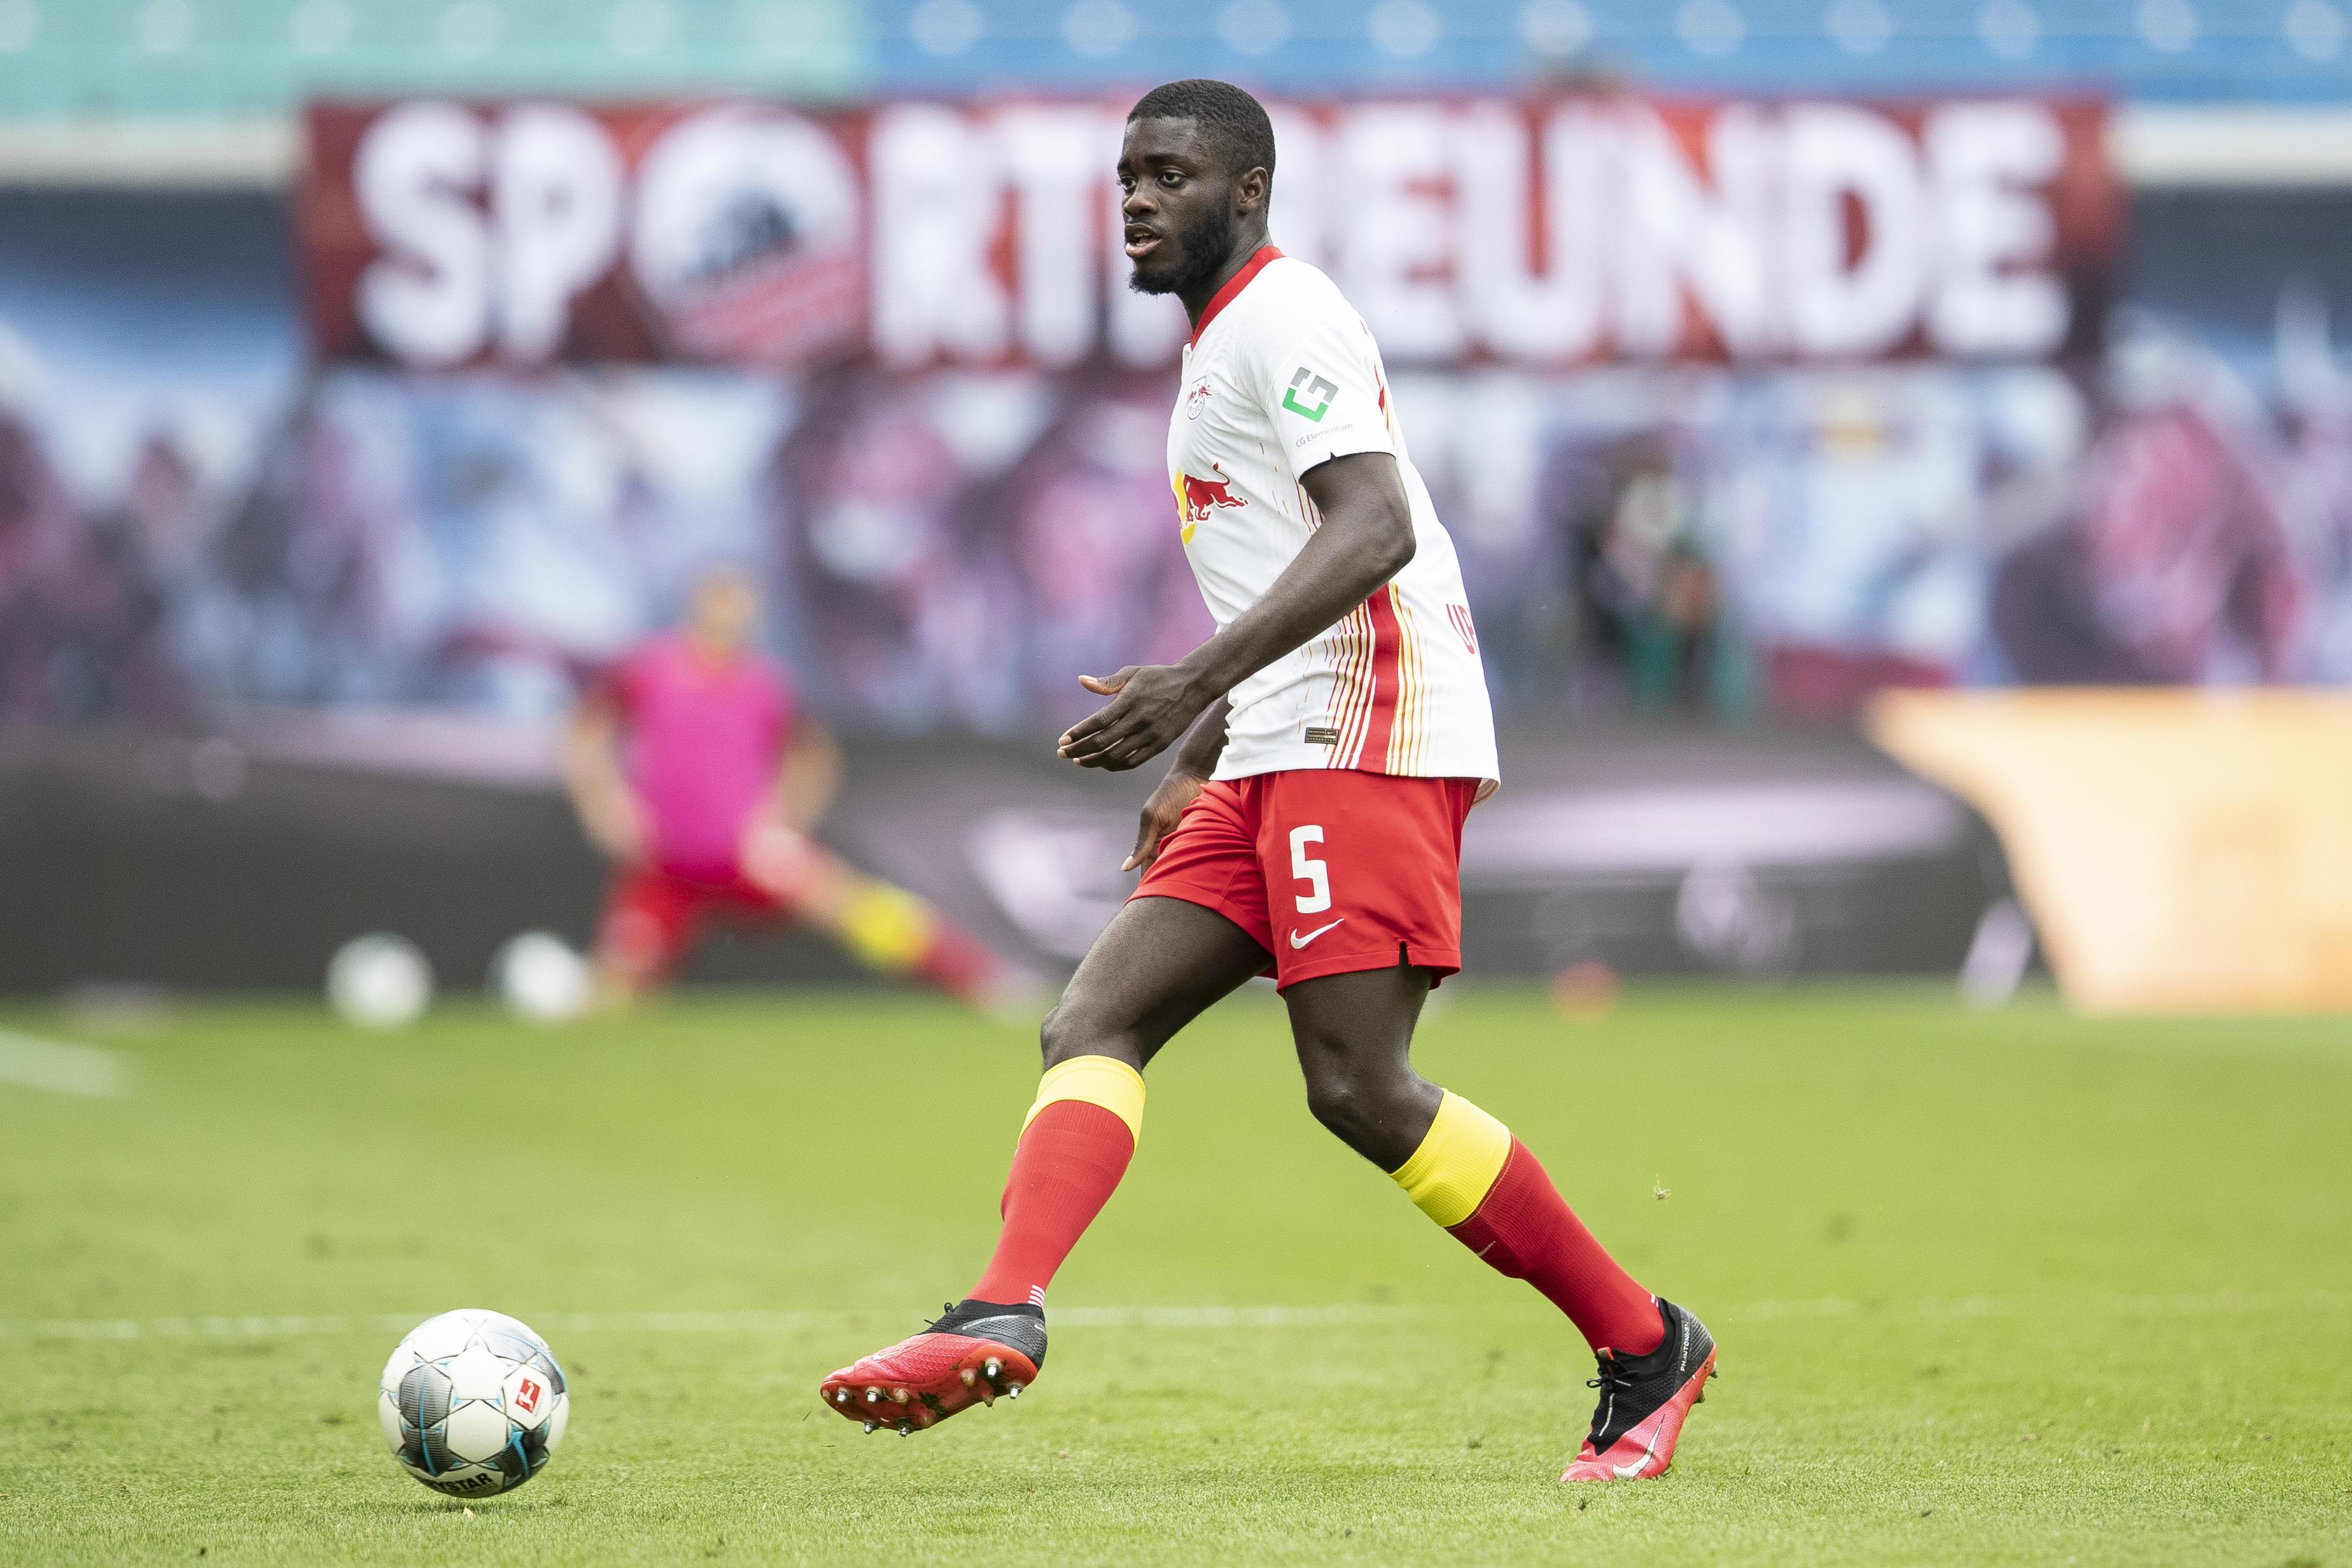 Liverpool Manchester United Among Teams Expected To Race For Upamecano Next Summer